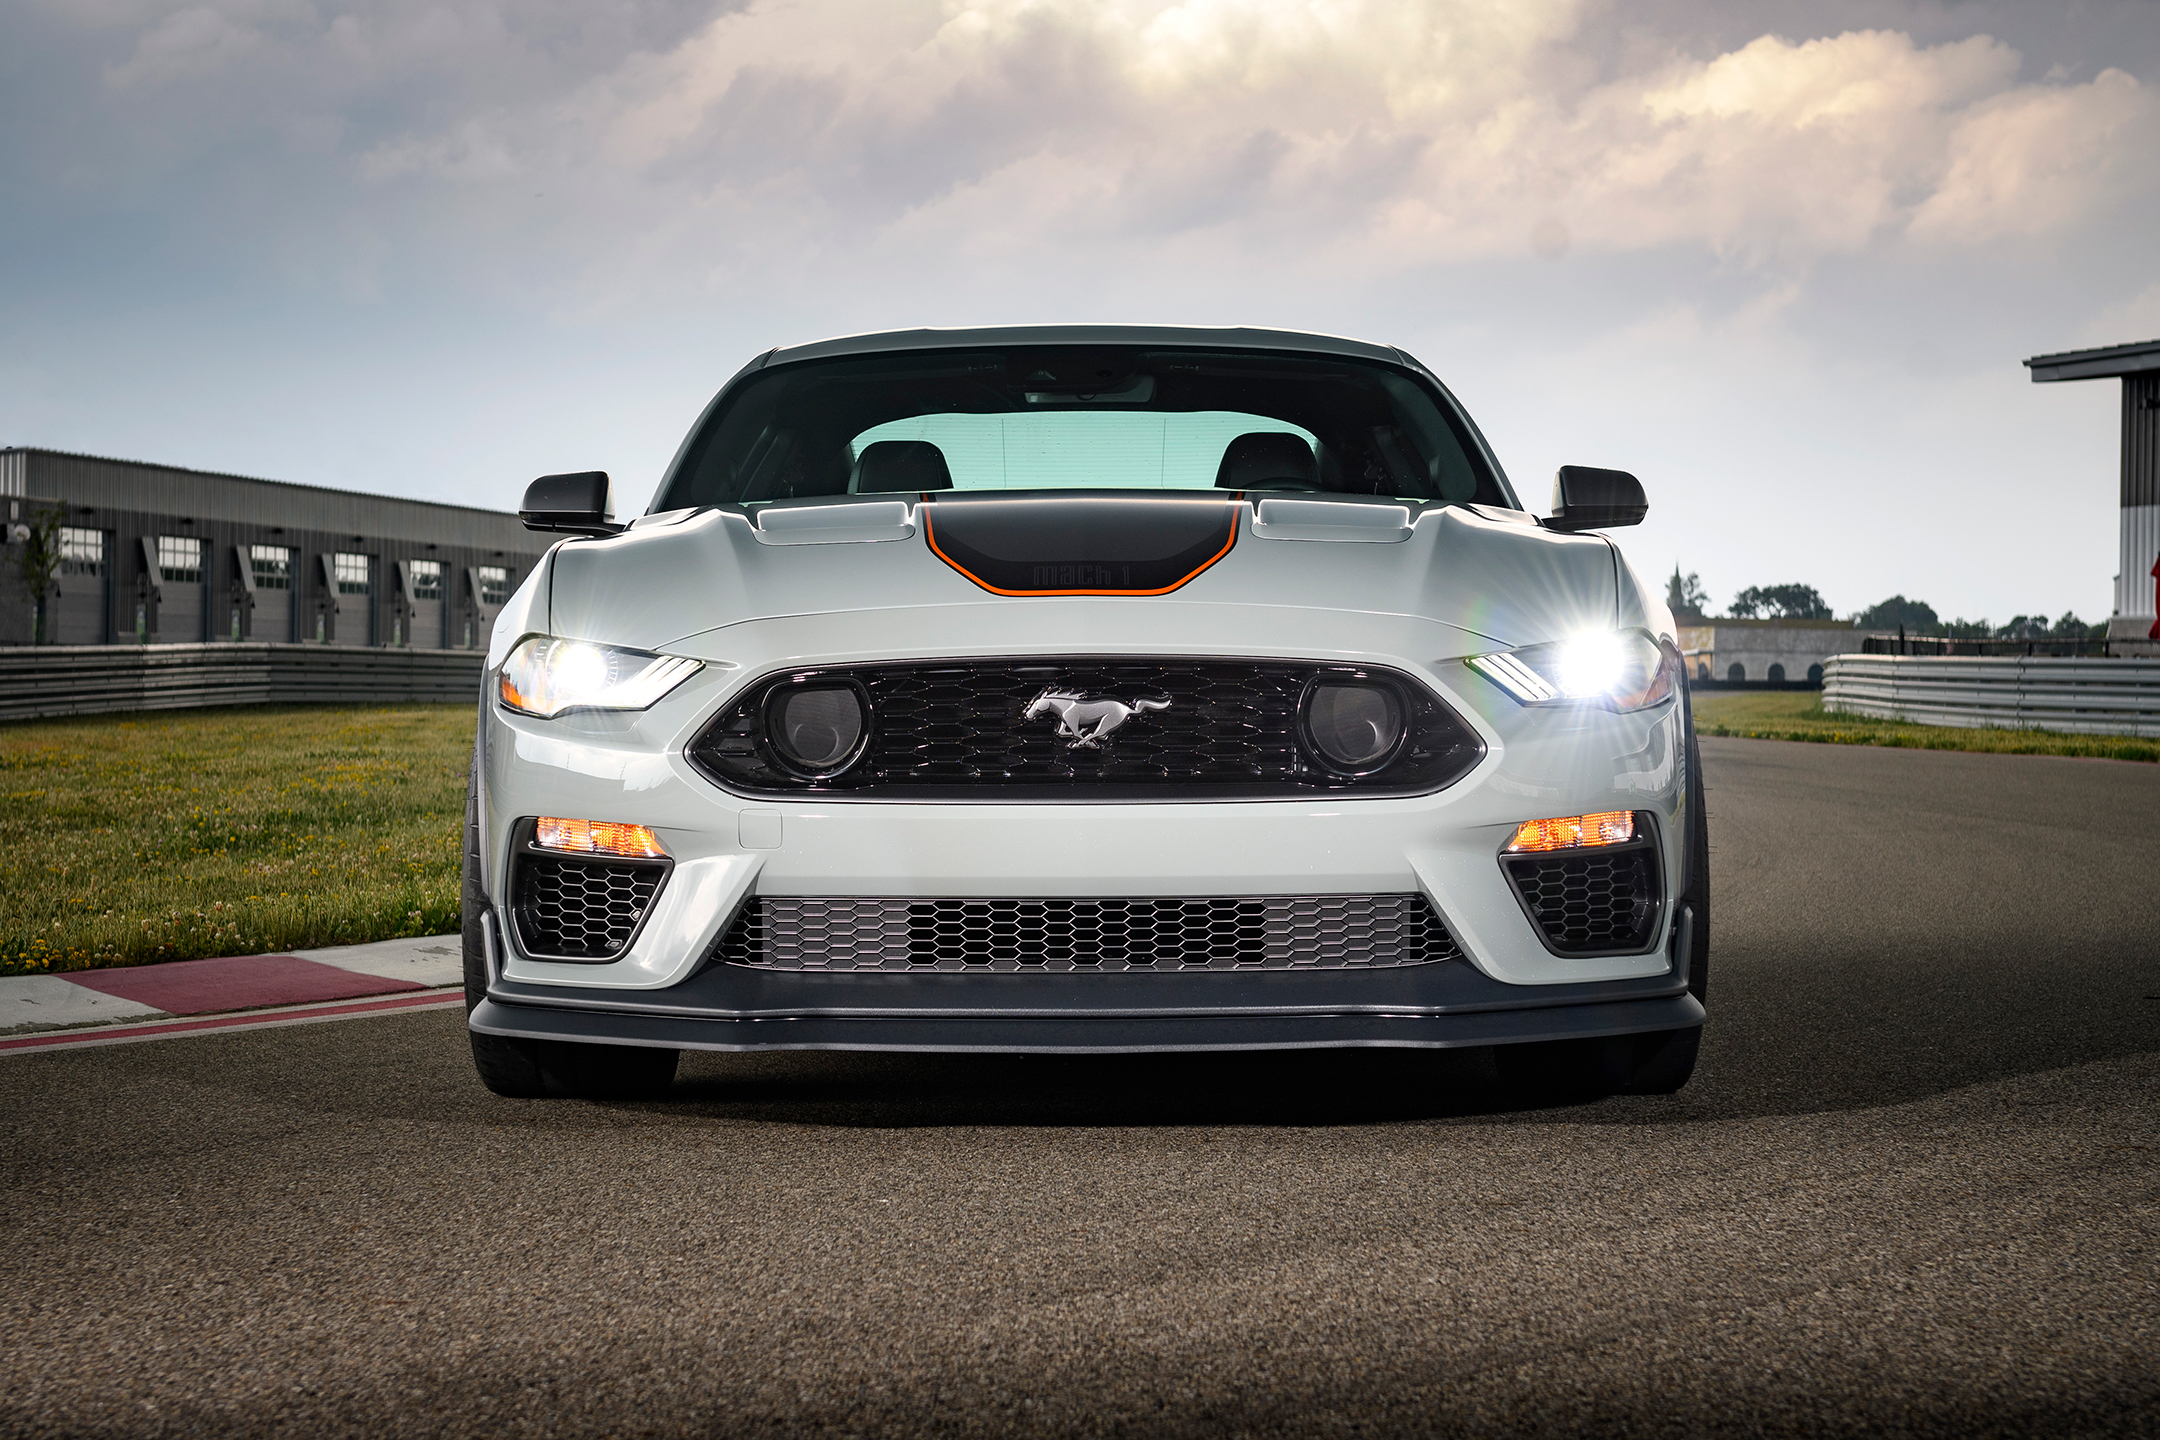 Ford Mustang Mach 1 - 2020 - front-face / face avant